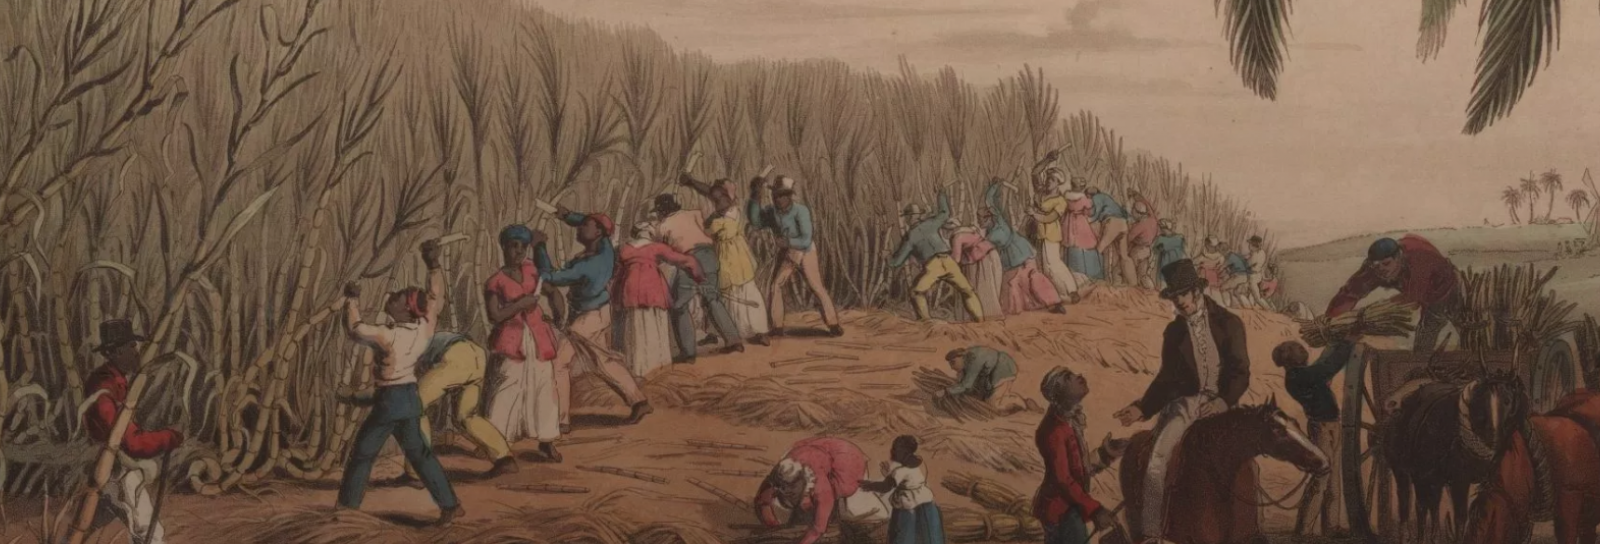 old image of slaves cutting sugar cane